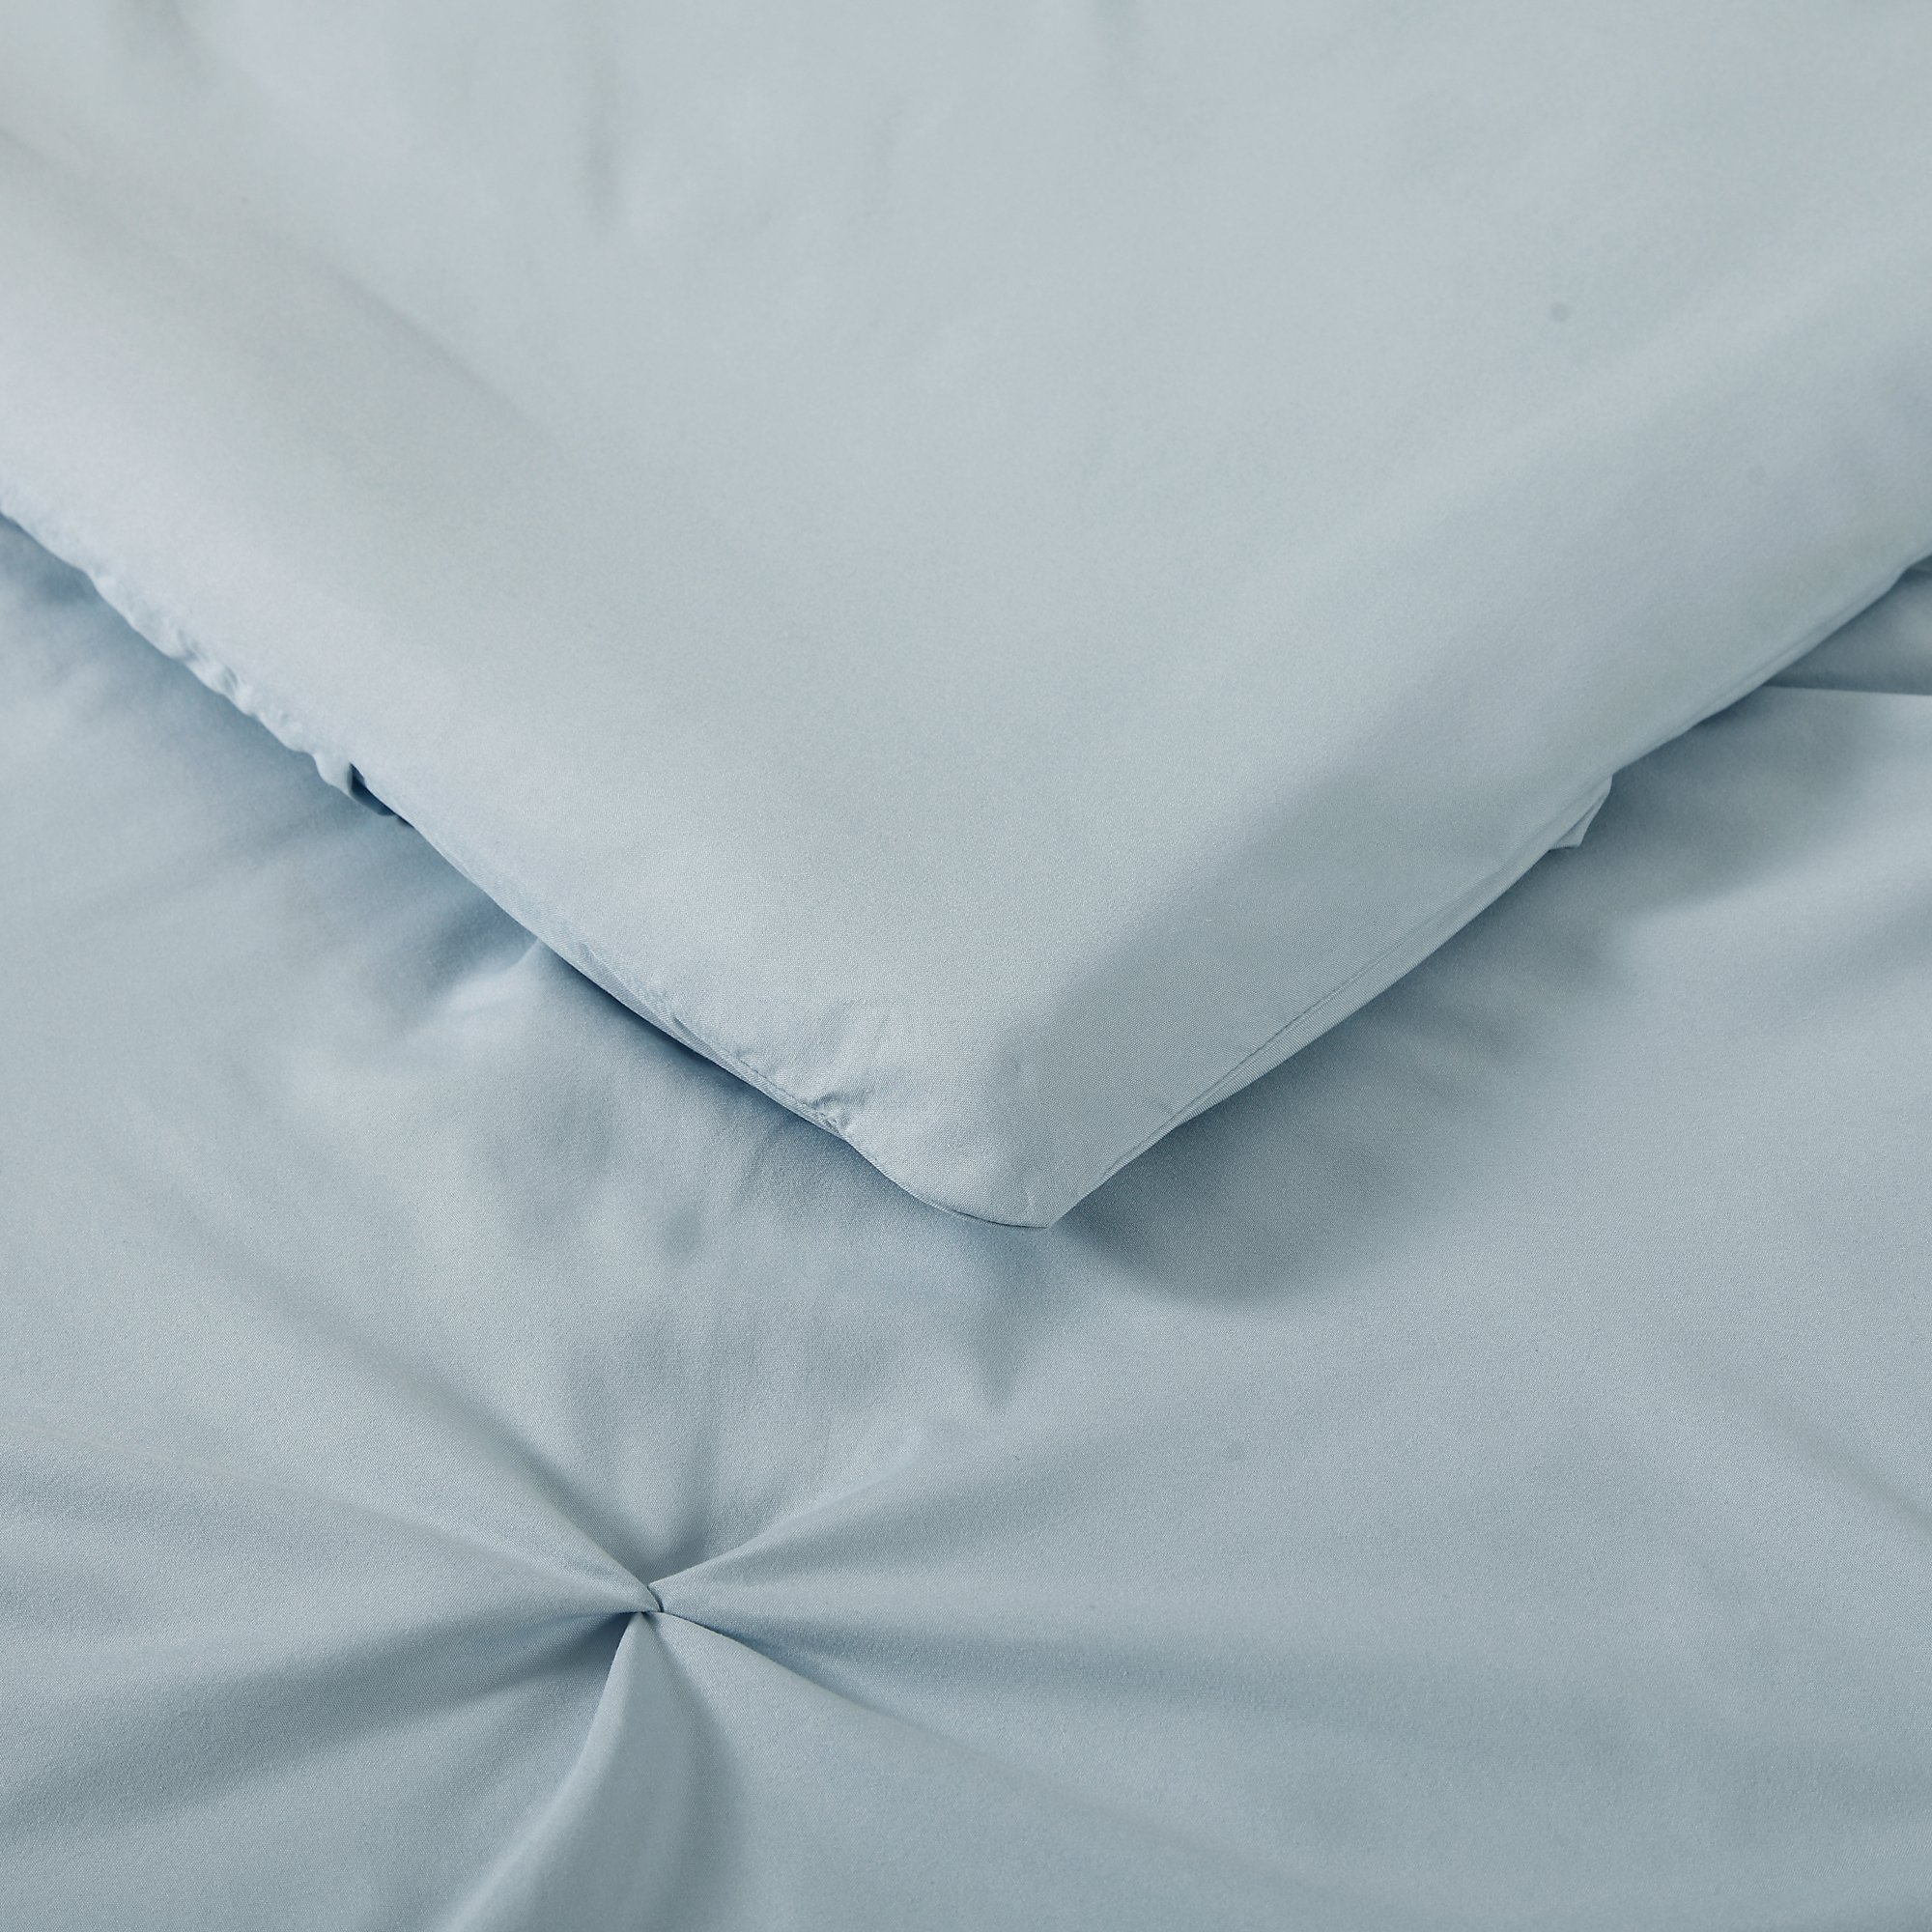 Truly Soft Everyday Pleated Comforter Set, Twin X-Large, Light Blue by Truly Soft Everyday (Image #4)